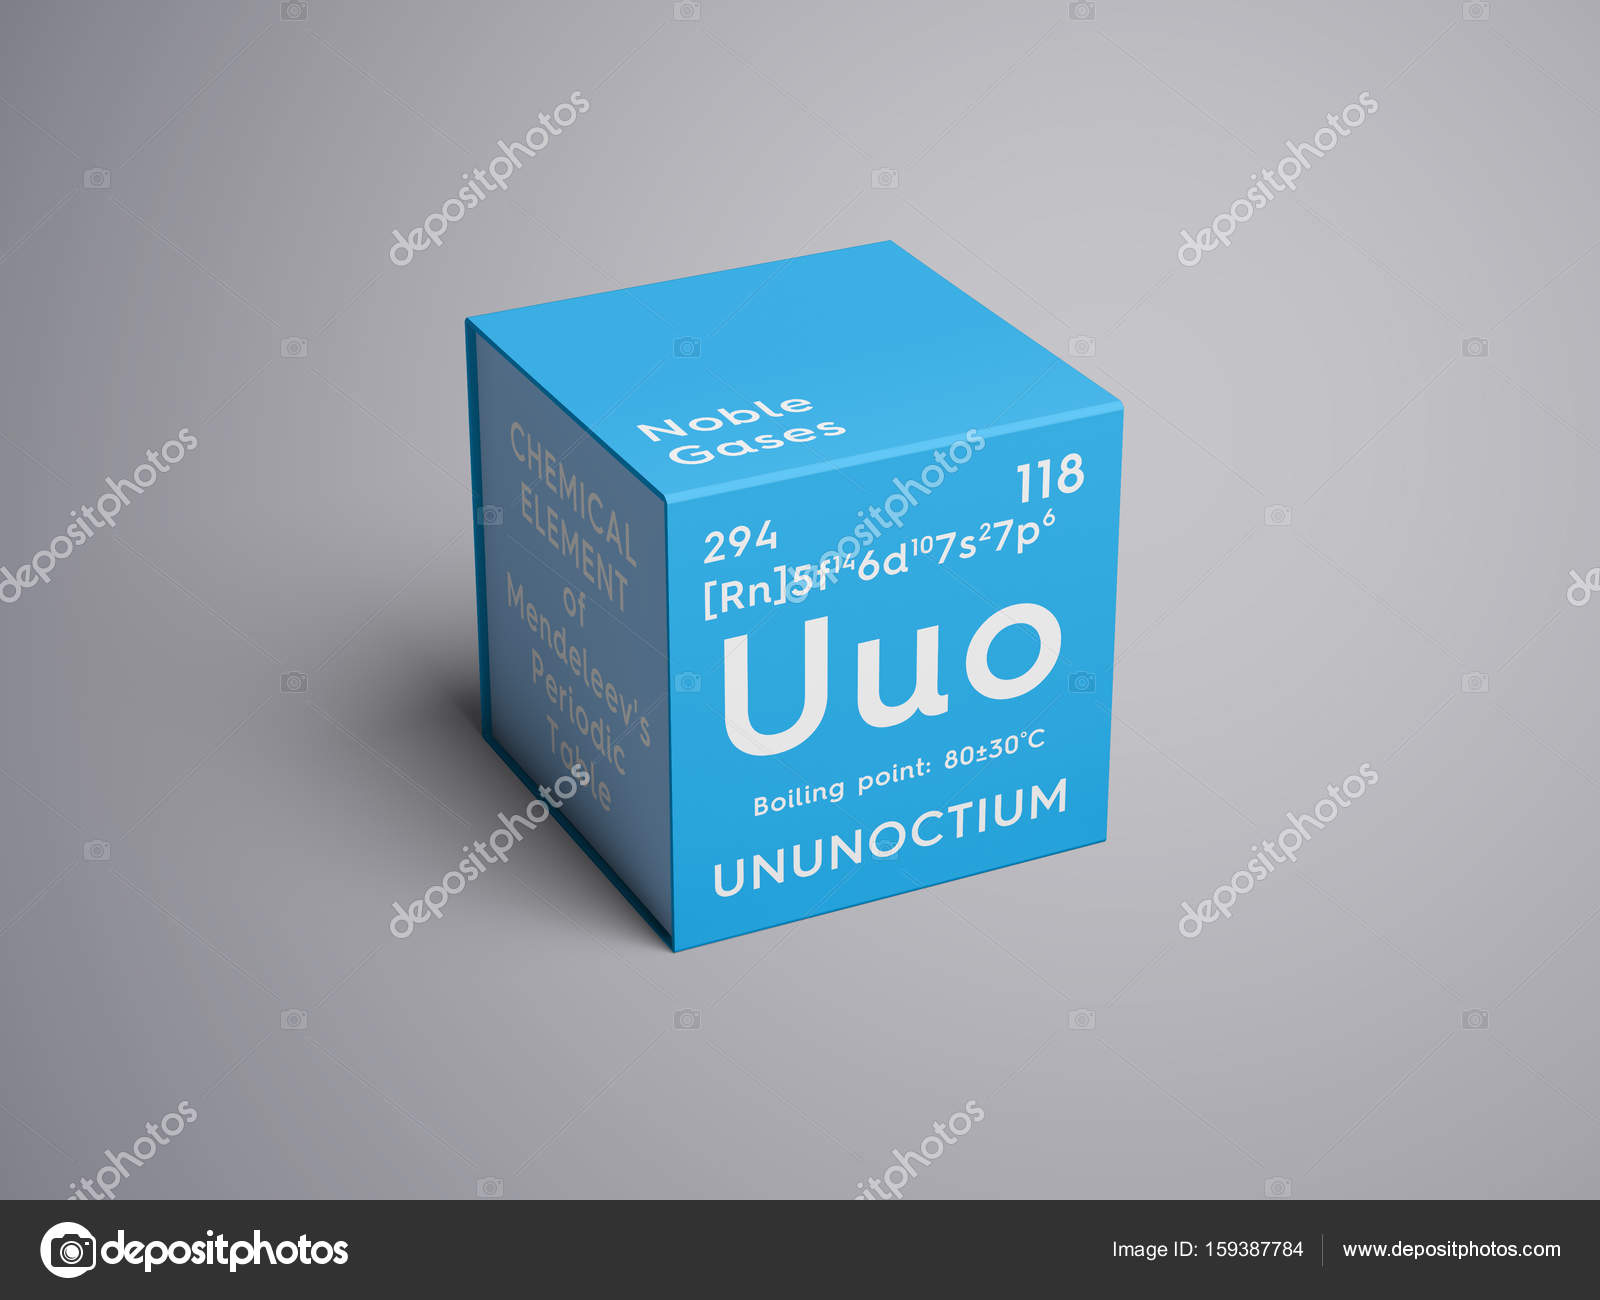 Ununoctium noble gases chemical element of mendeleevs periodic ununoctium noble gases chemical element of mendeleevs periodic table ununoctium in square cube creative concept photo by sanches812 urtaz Images